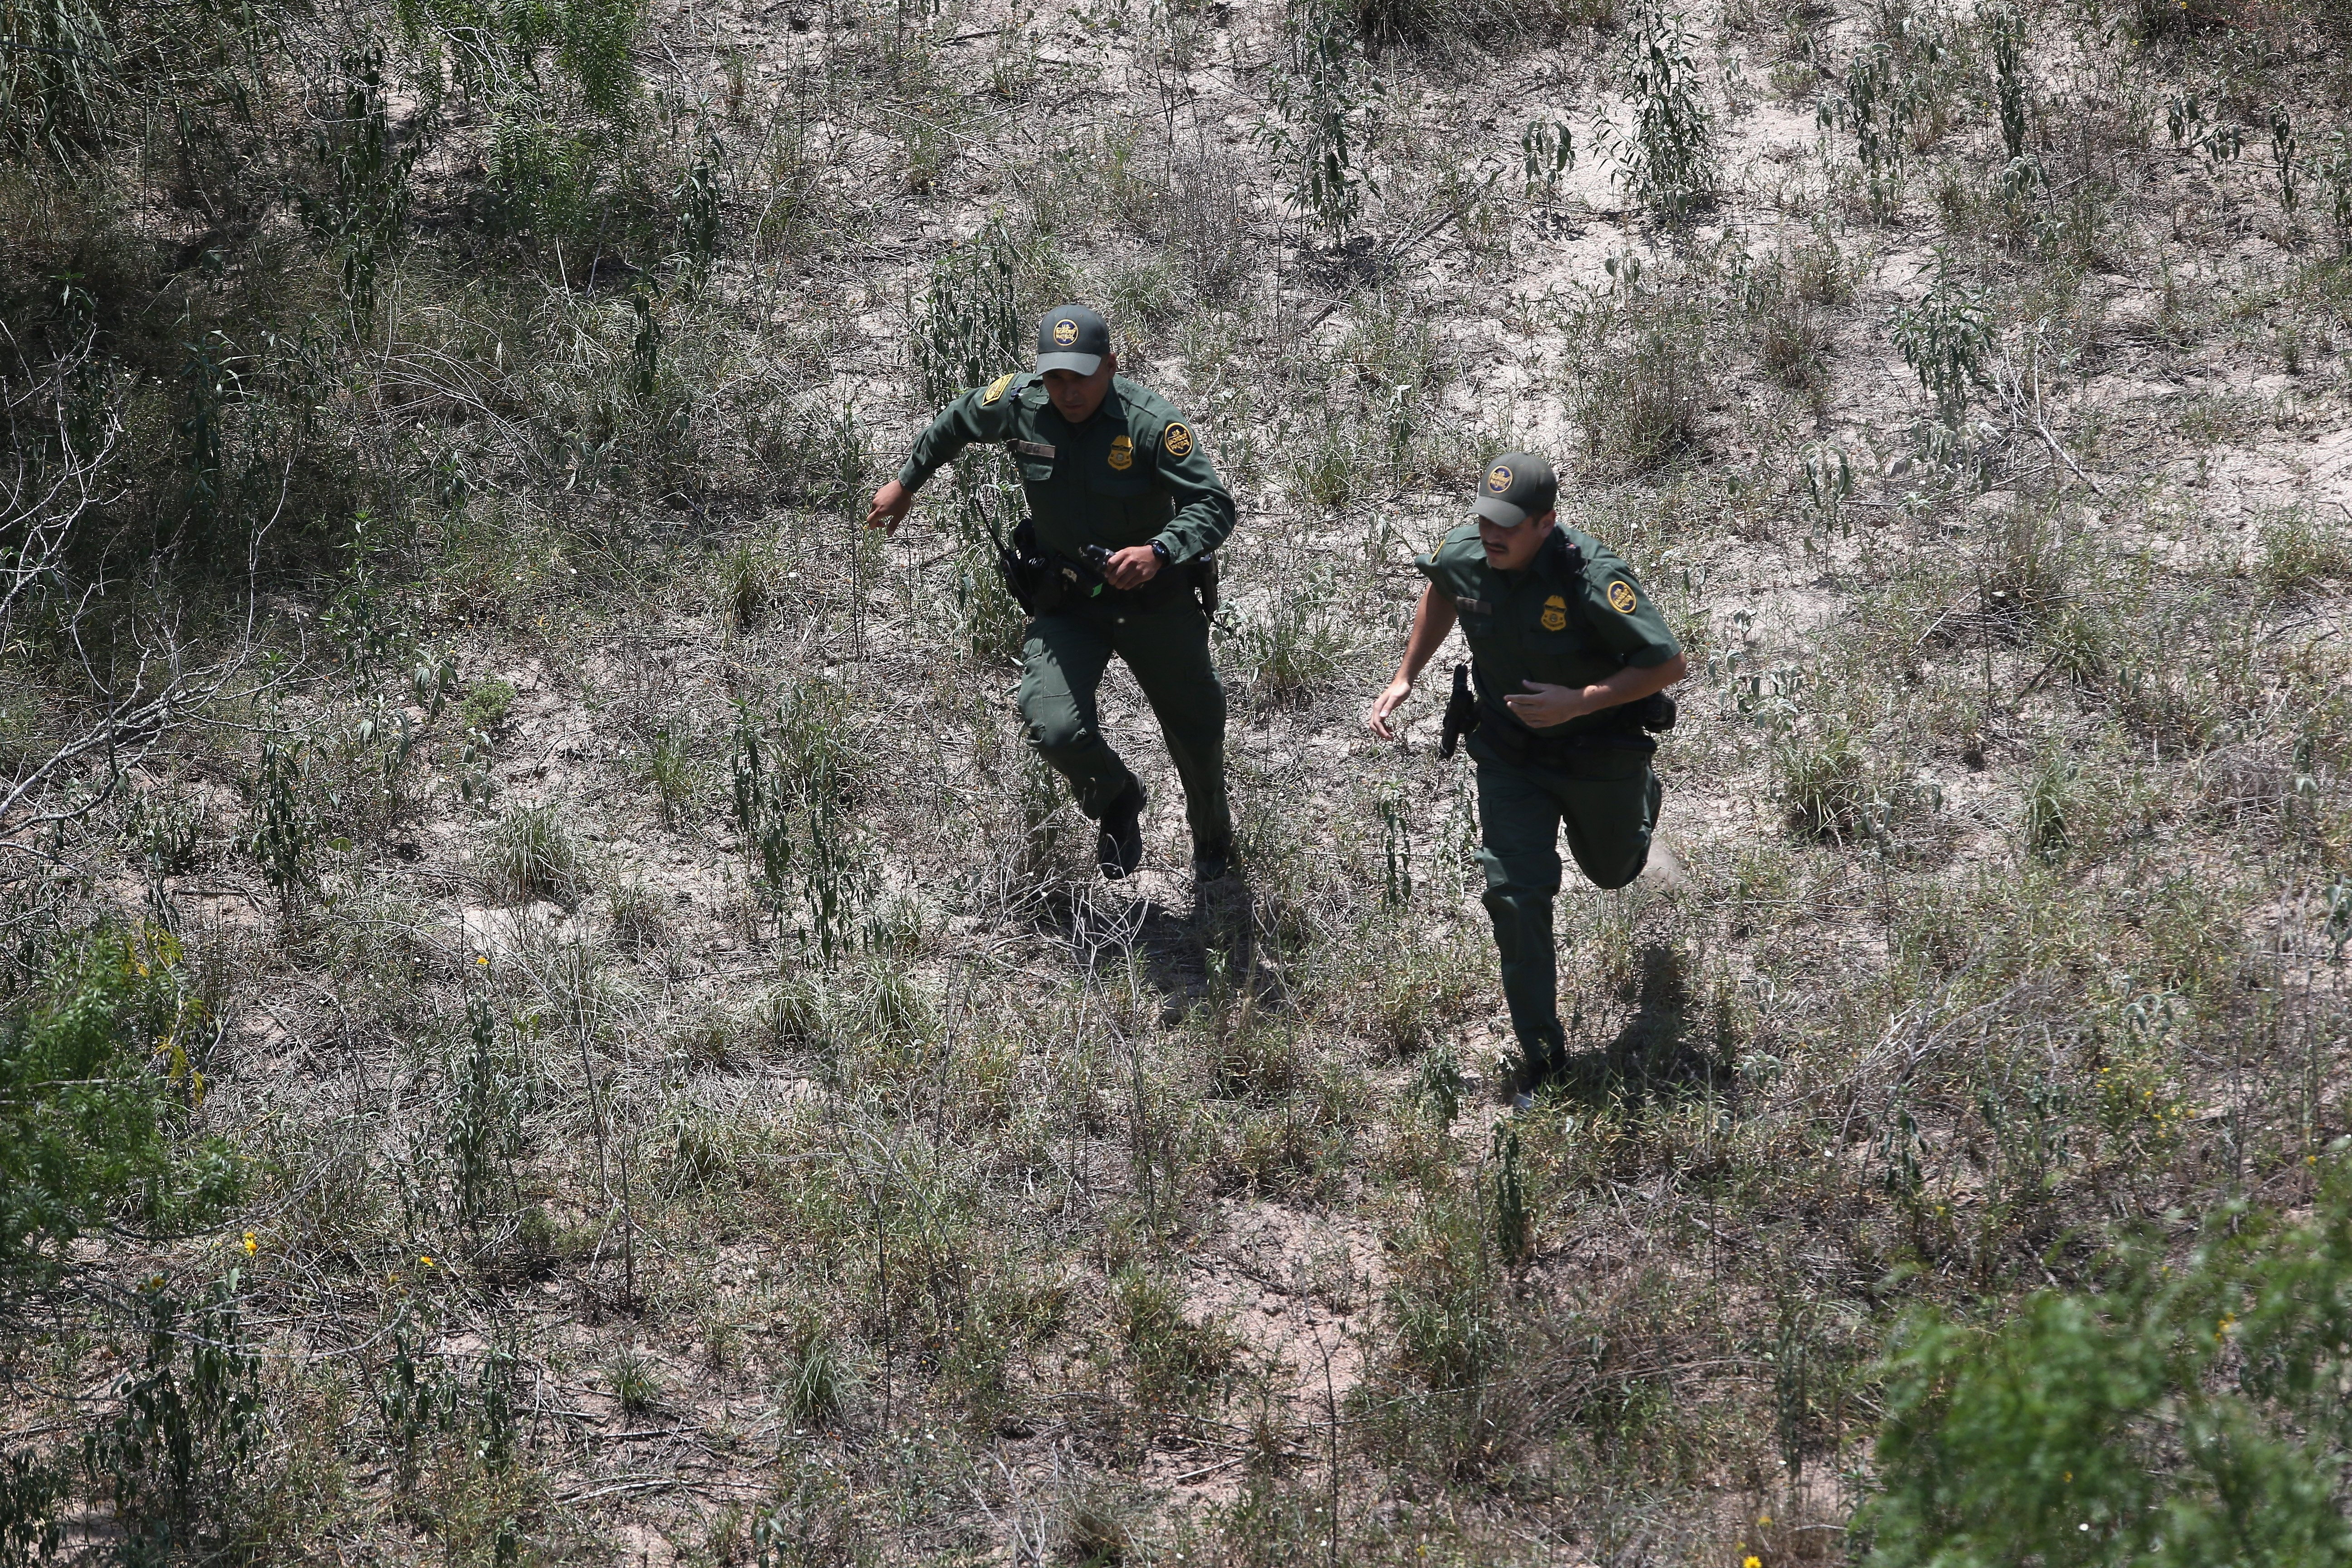 U.S. Border Patrol agents chase undocumented immigrants through the countryside near Falfurrias, Texas on July 22, 2014.